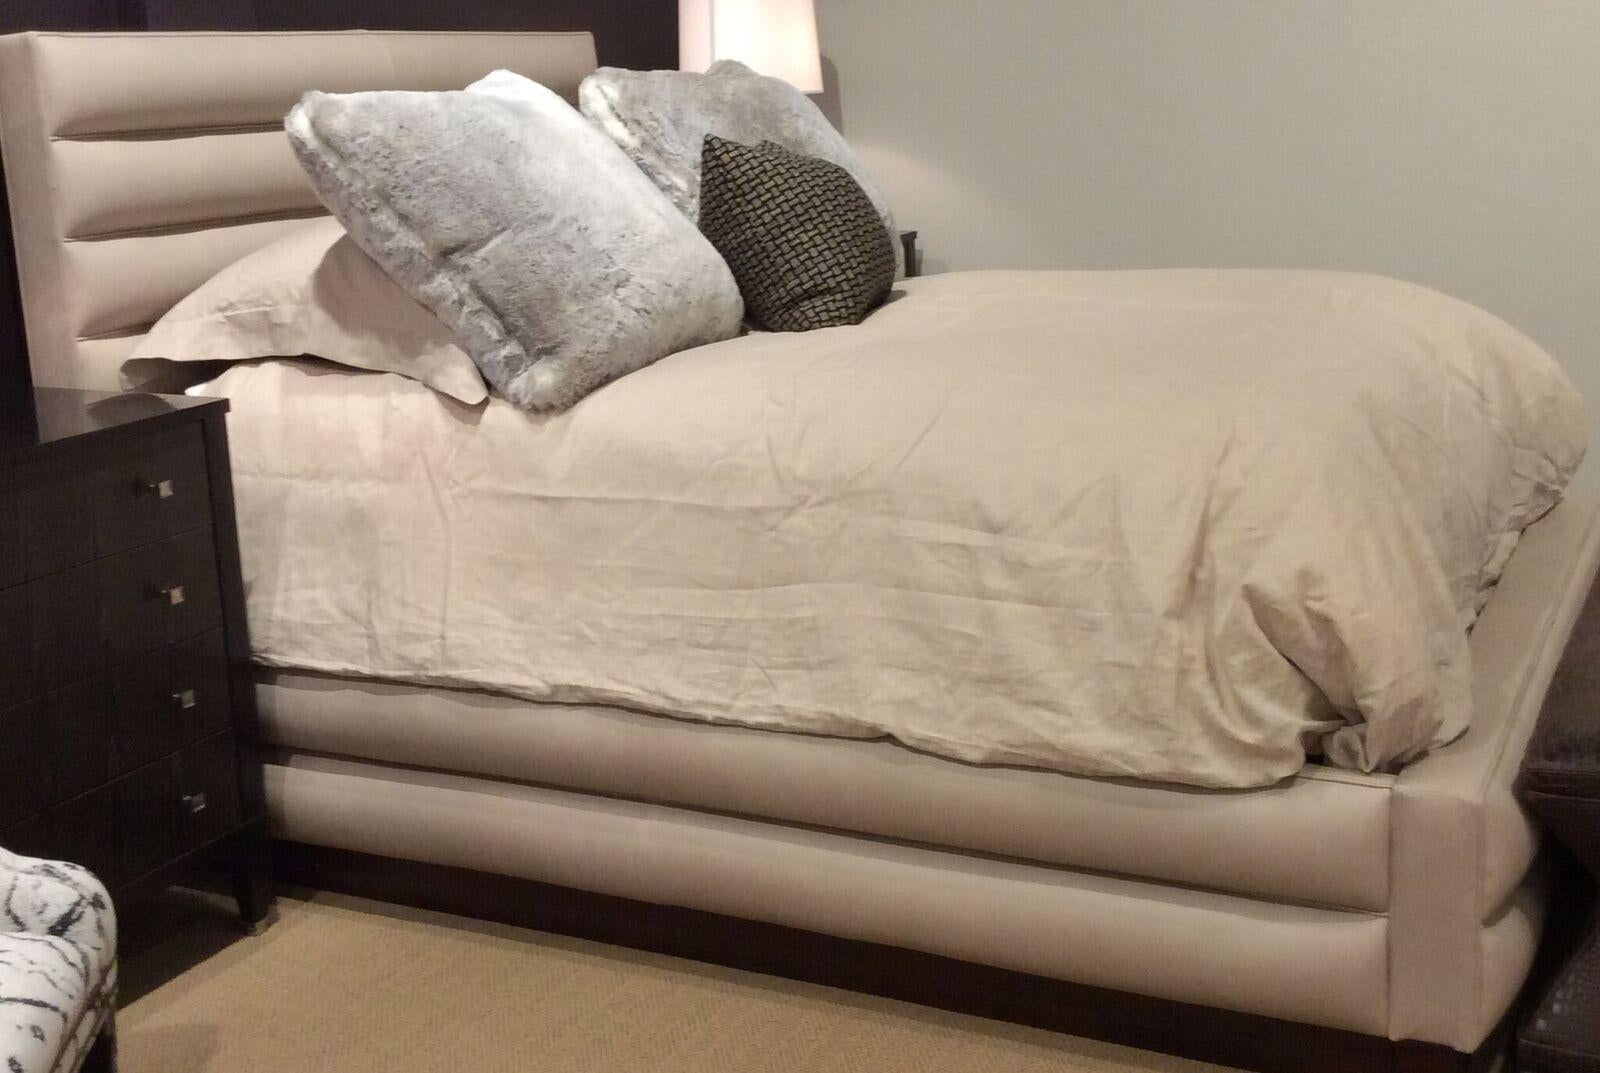 hickory chair furniture beds wood folding chairs costco chamber leather queen bed chairish with low footboard made ash and dark walnut finish modern